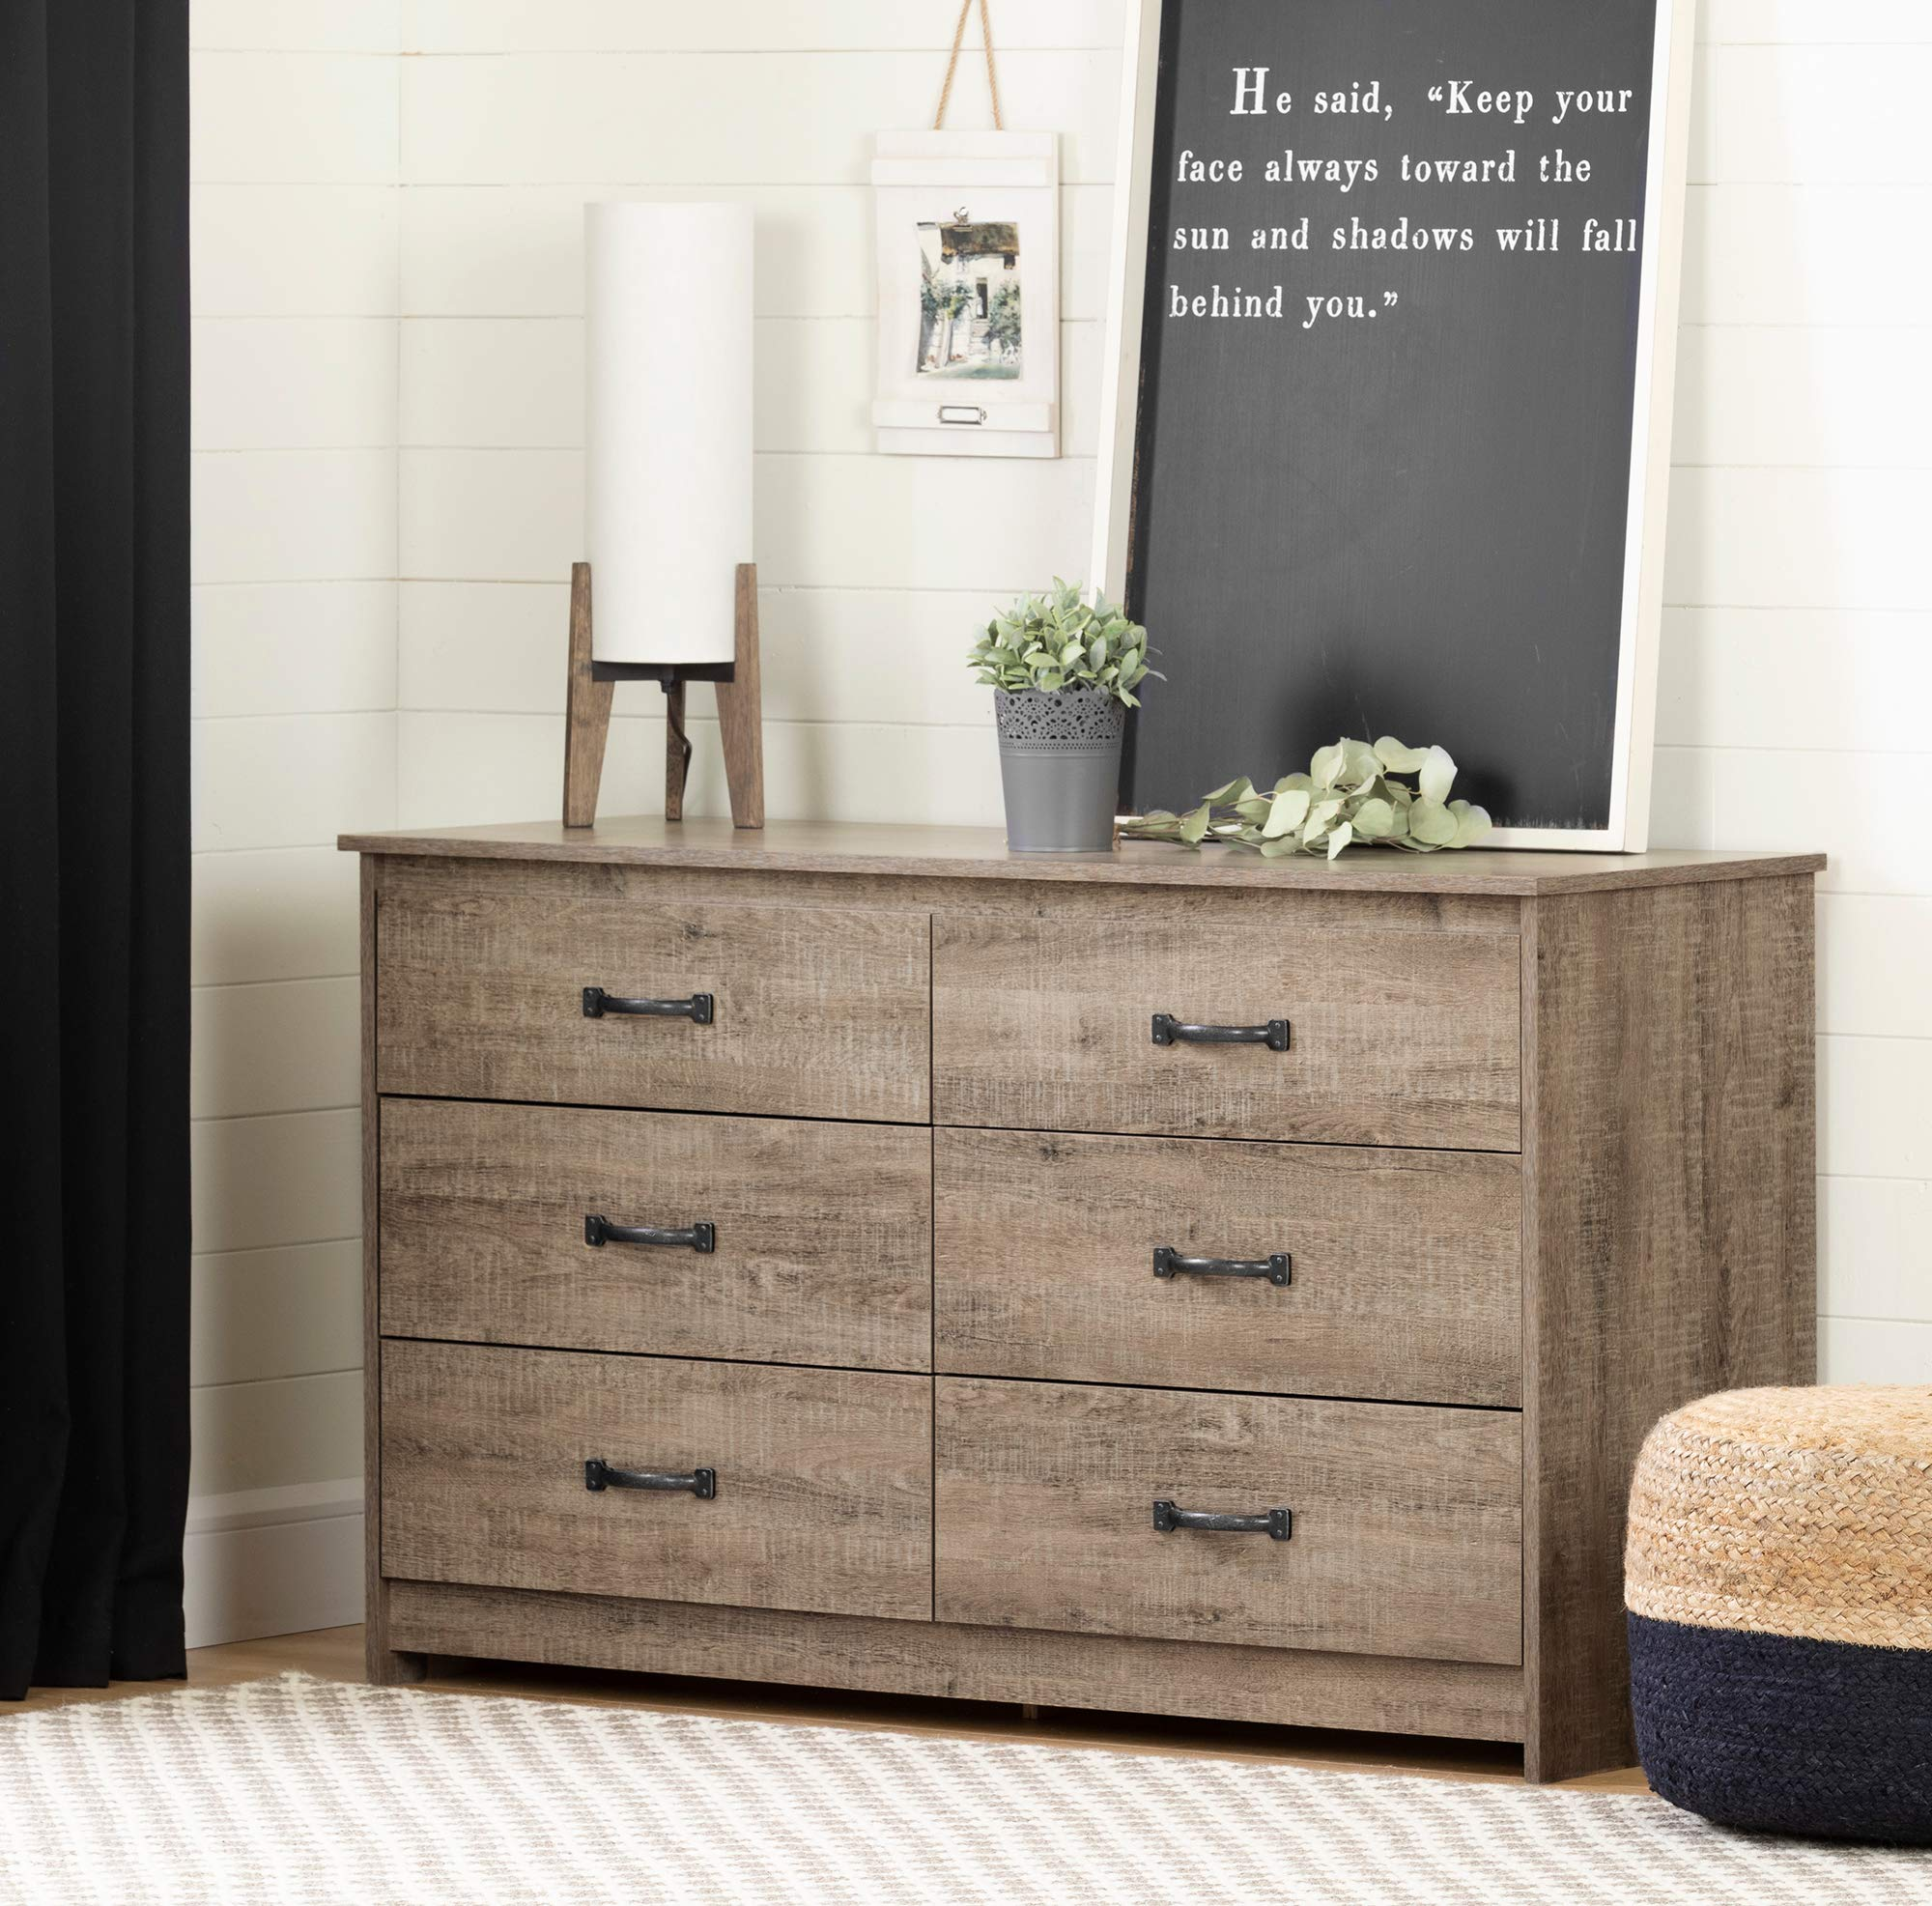 South Shore 12231 Tassio 6-Drawer Double Dresser Weathered Oak